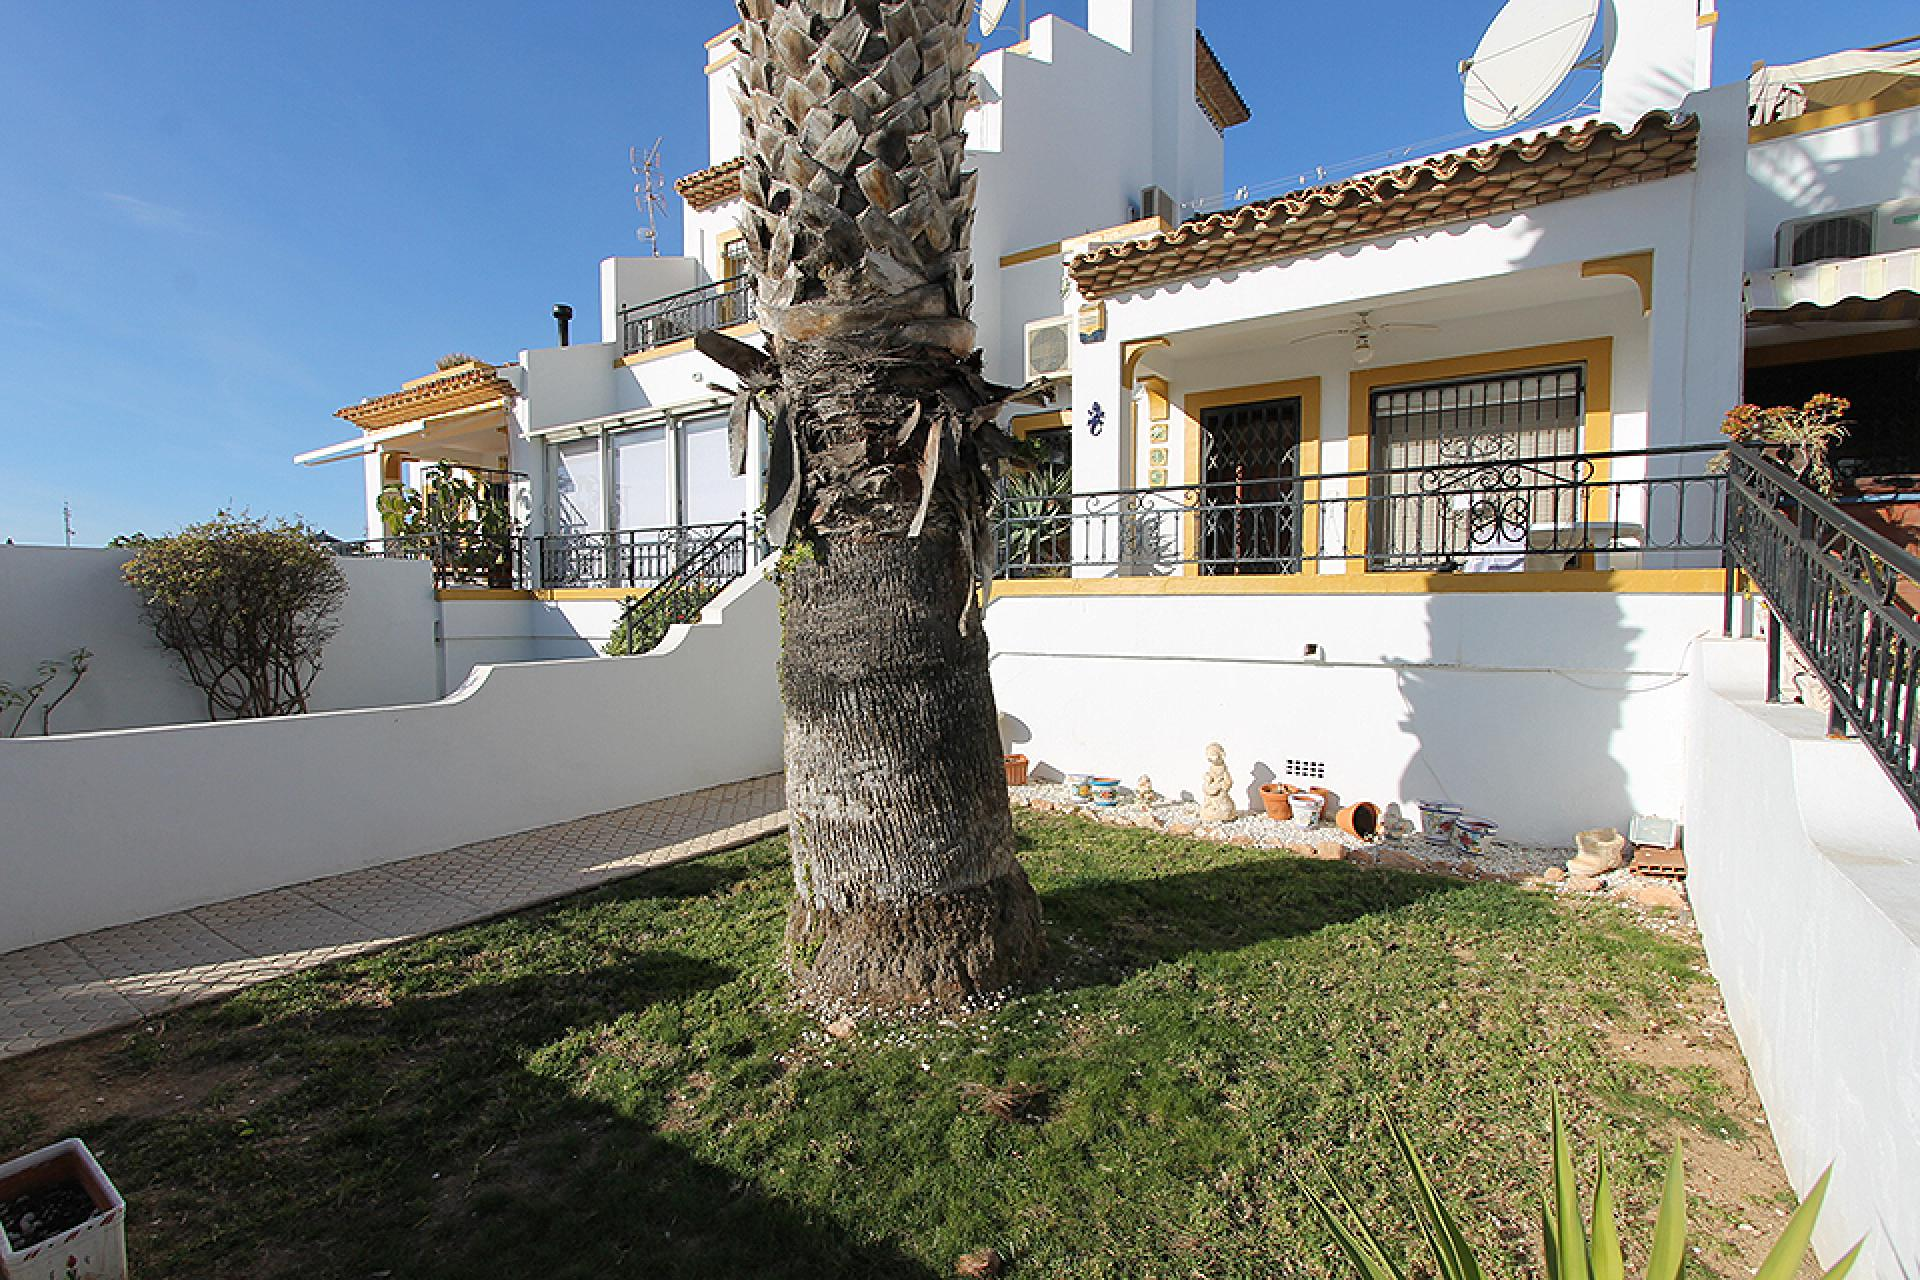 Townhouse in mediterranean style for sale at the golf course of Villamartin, Orihuela Costa.